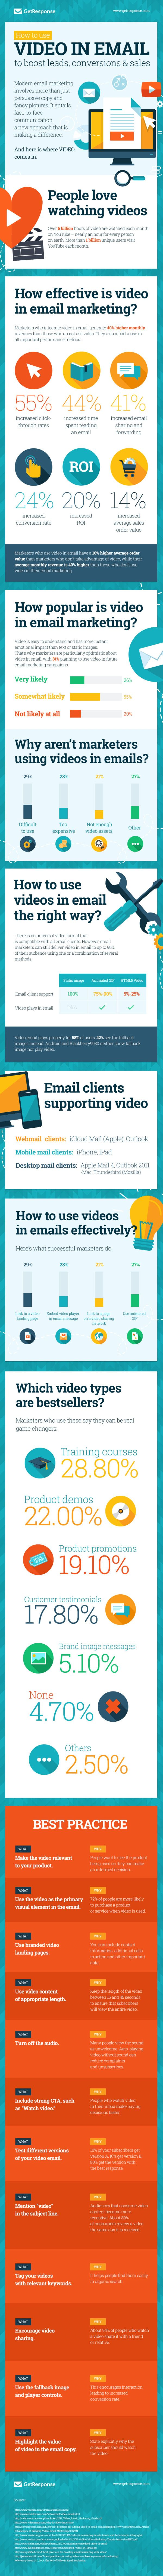 Videos in EMAIL  55% increase in click-through rates 44% more time spent reading emails 41% more email sharing and forwarding 24% increase in conversion rate...